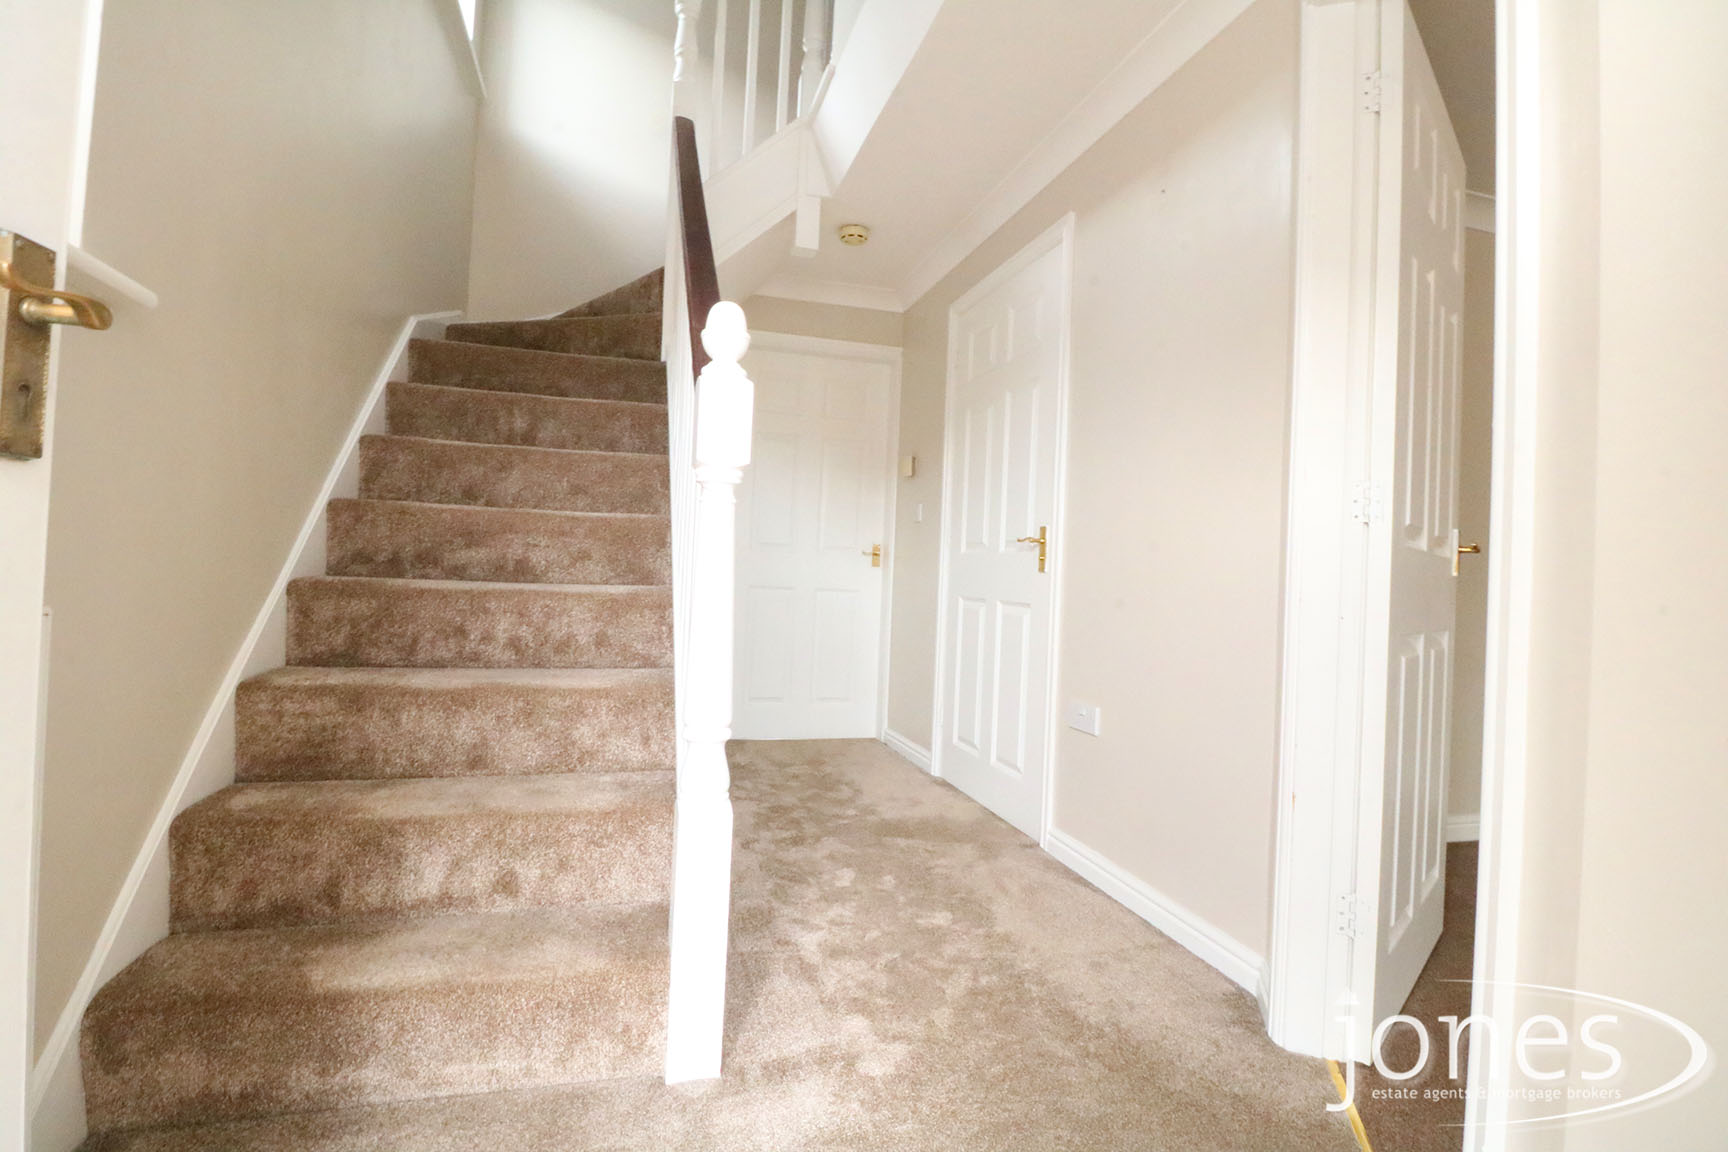 Home for Sale Let - Photo 07 Timothy Court, Stockton on Tees, TS18 3AU